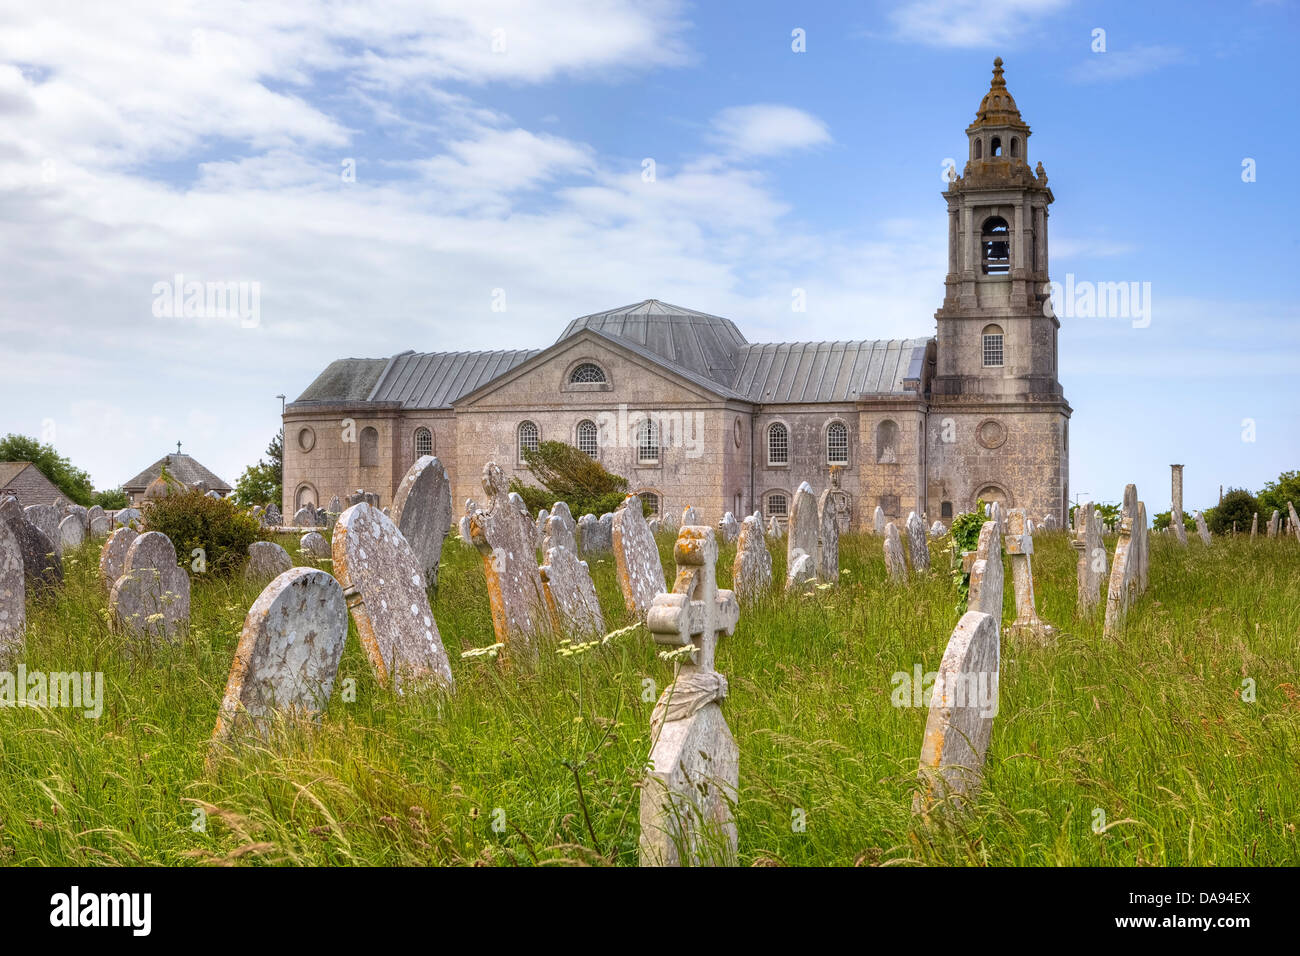 St George's Church, Portland, Dorset, United Kingdom - Stock Image